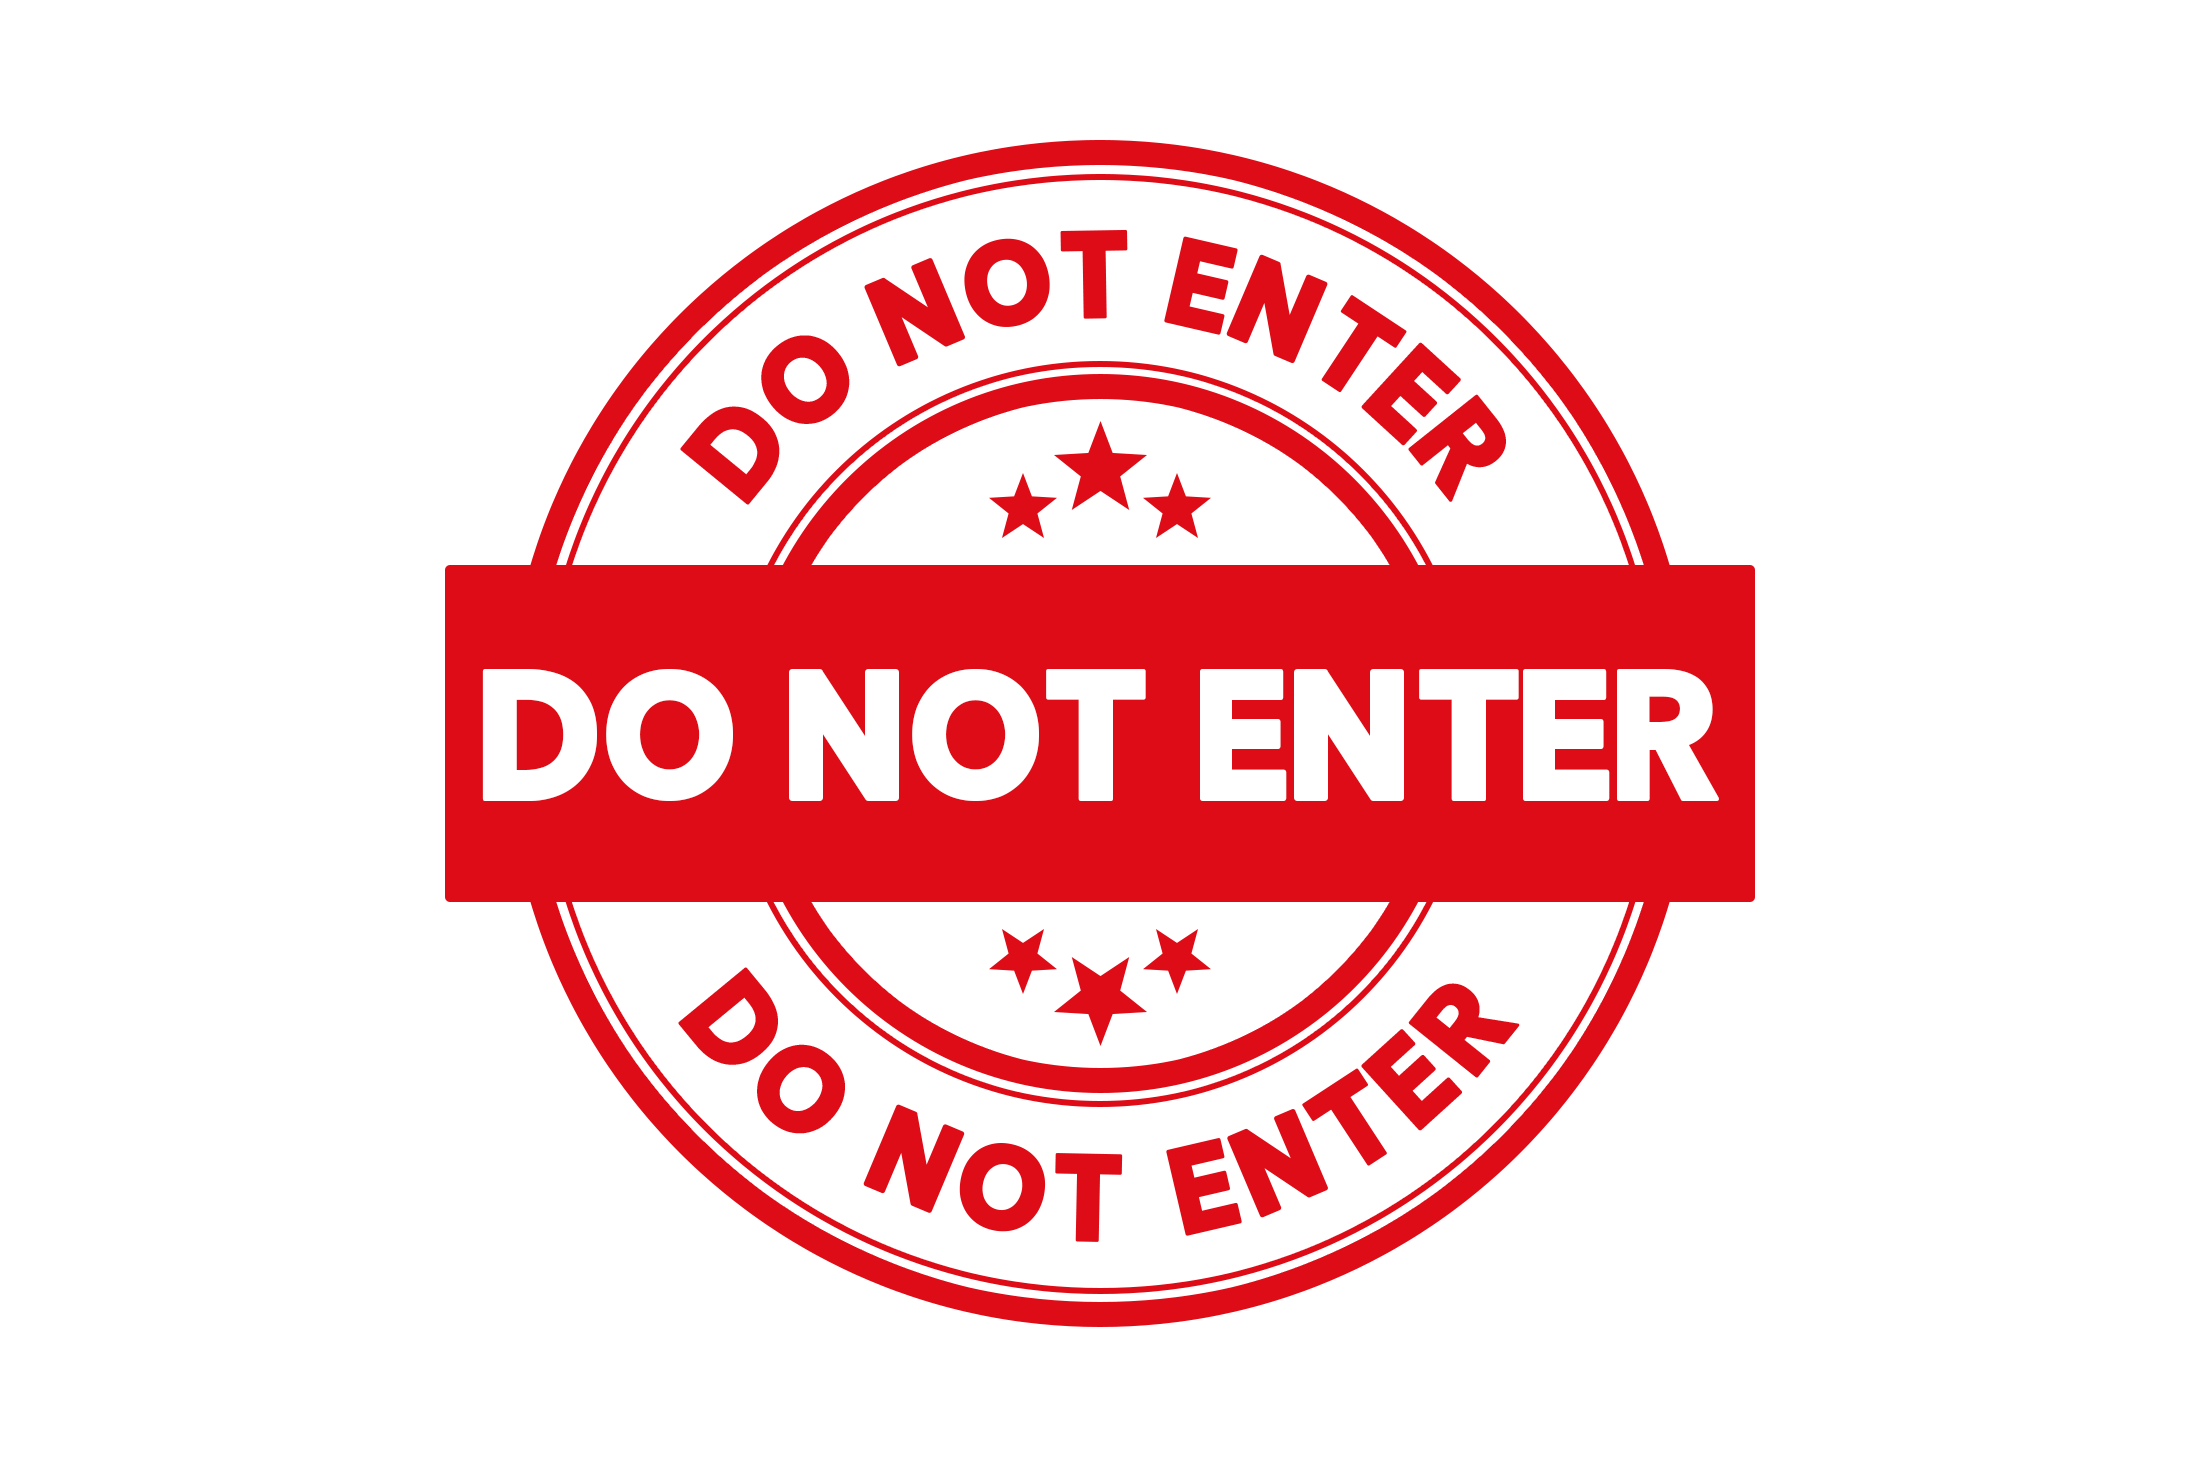 Round do not enter stamp PSD